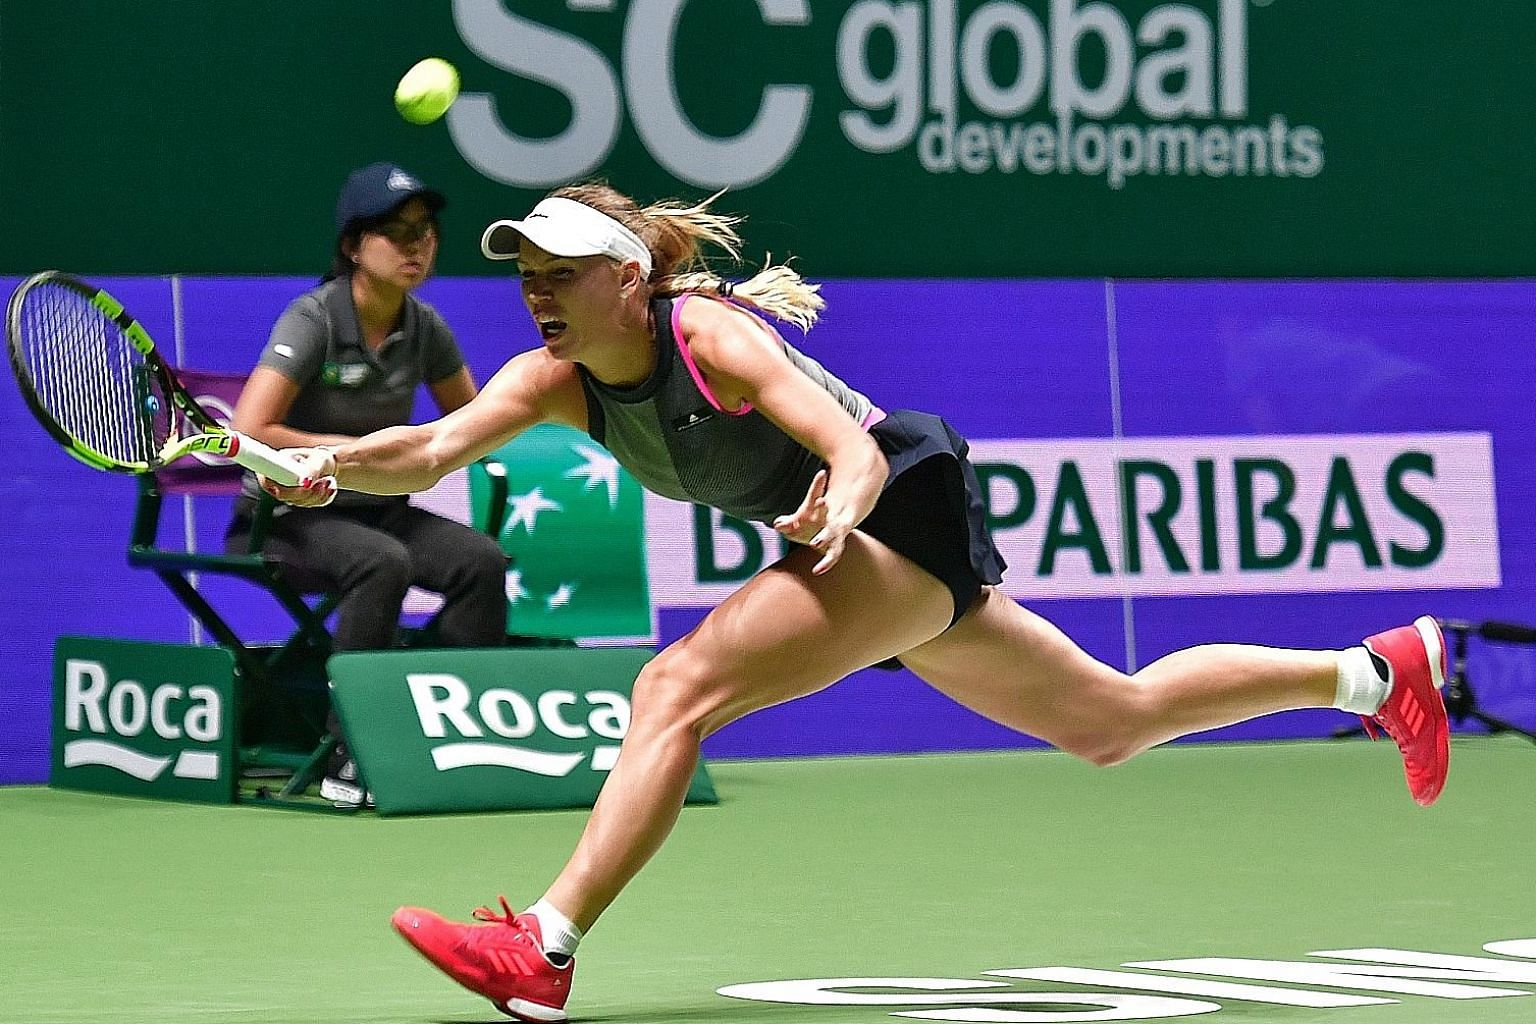 Former world No. 1 Caroline Wozniacki stretching to return a shot from Elina Svitolina in their WTA Finals match last night. The Dane easily won 6-2, 6-0 for her first victory over the Ukrainian.